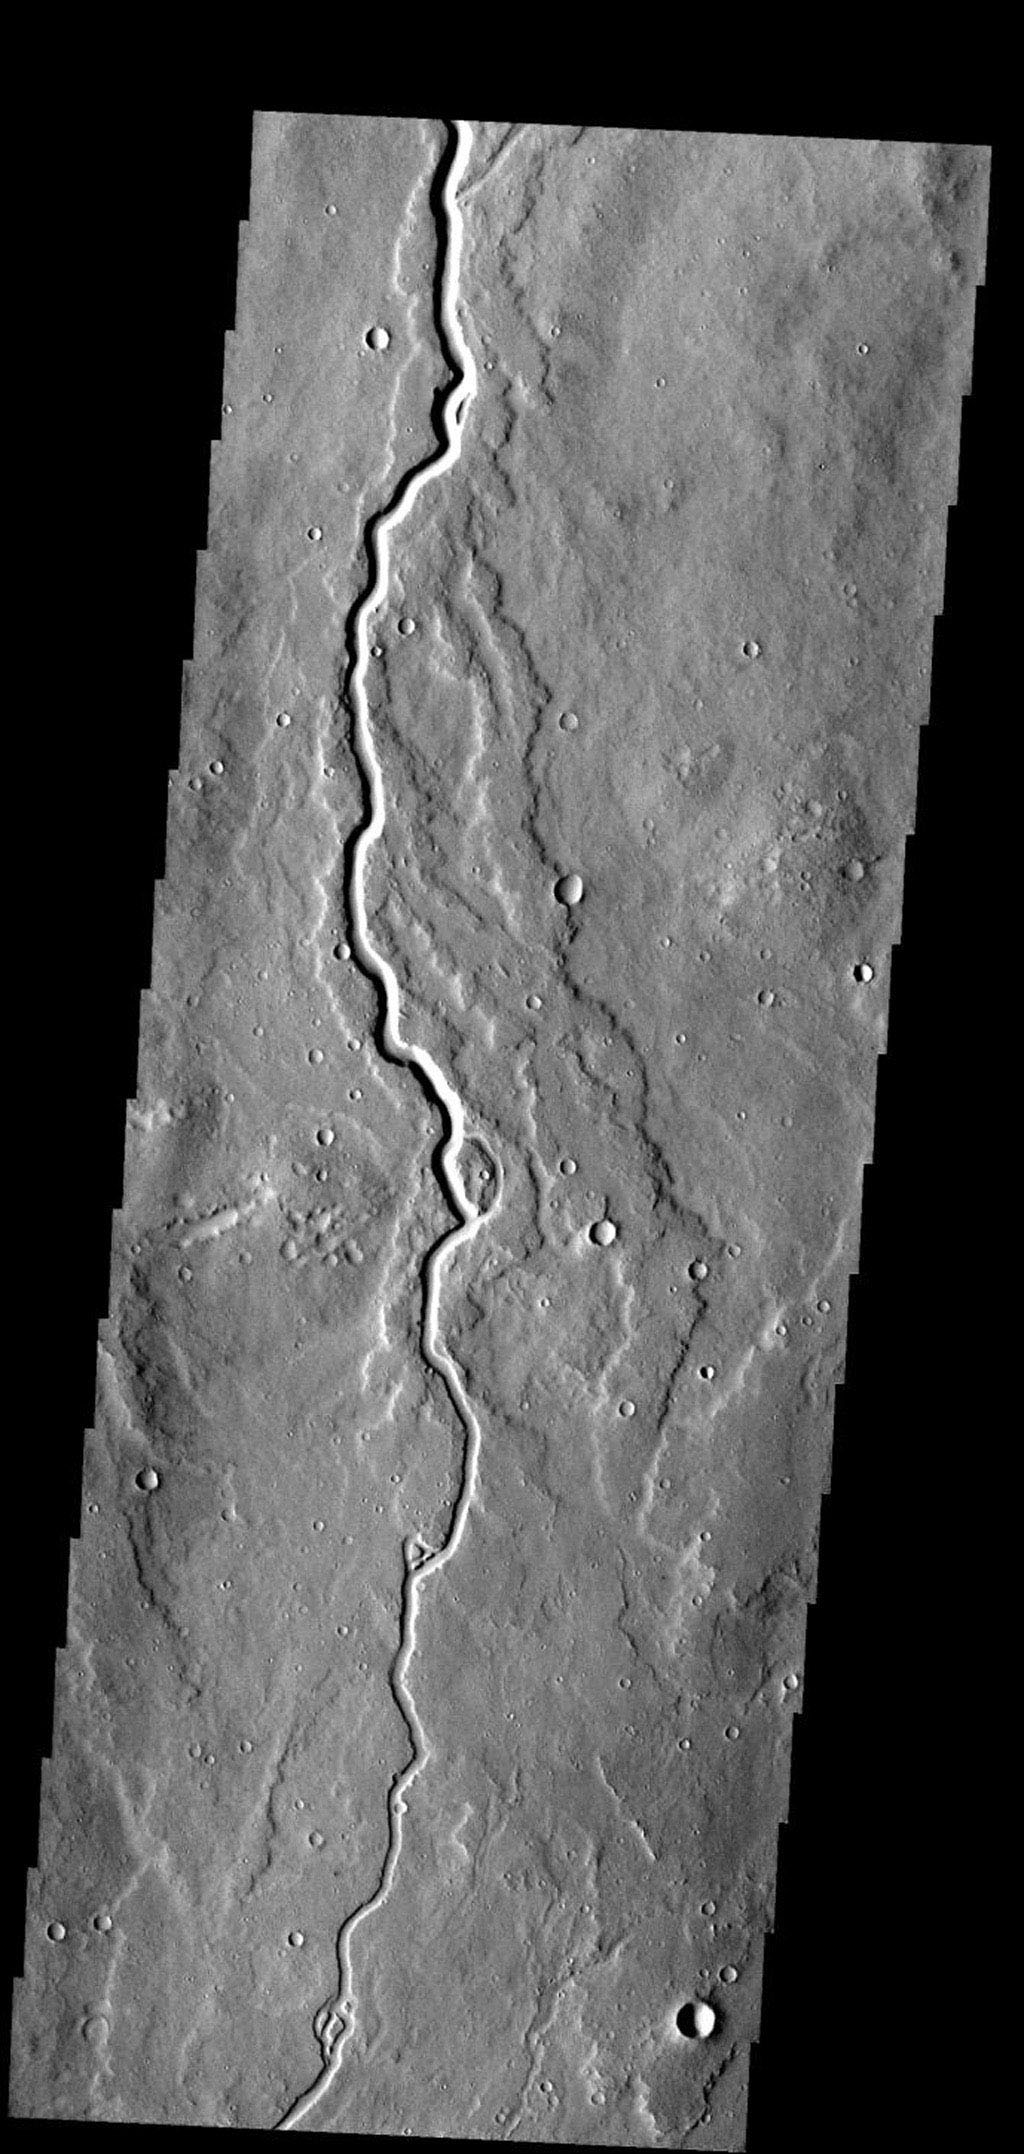 This lava channel is part of the Elysium Mons flows on Mars as seen by NASA's 2001 Mars Odyssey spacecraft.